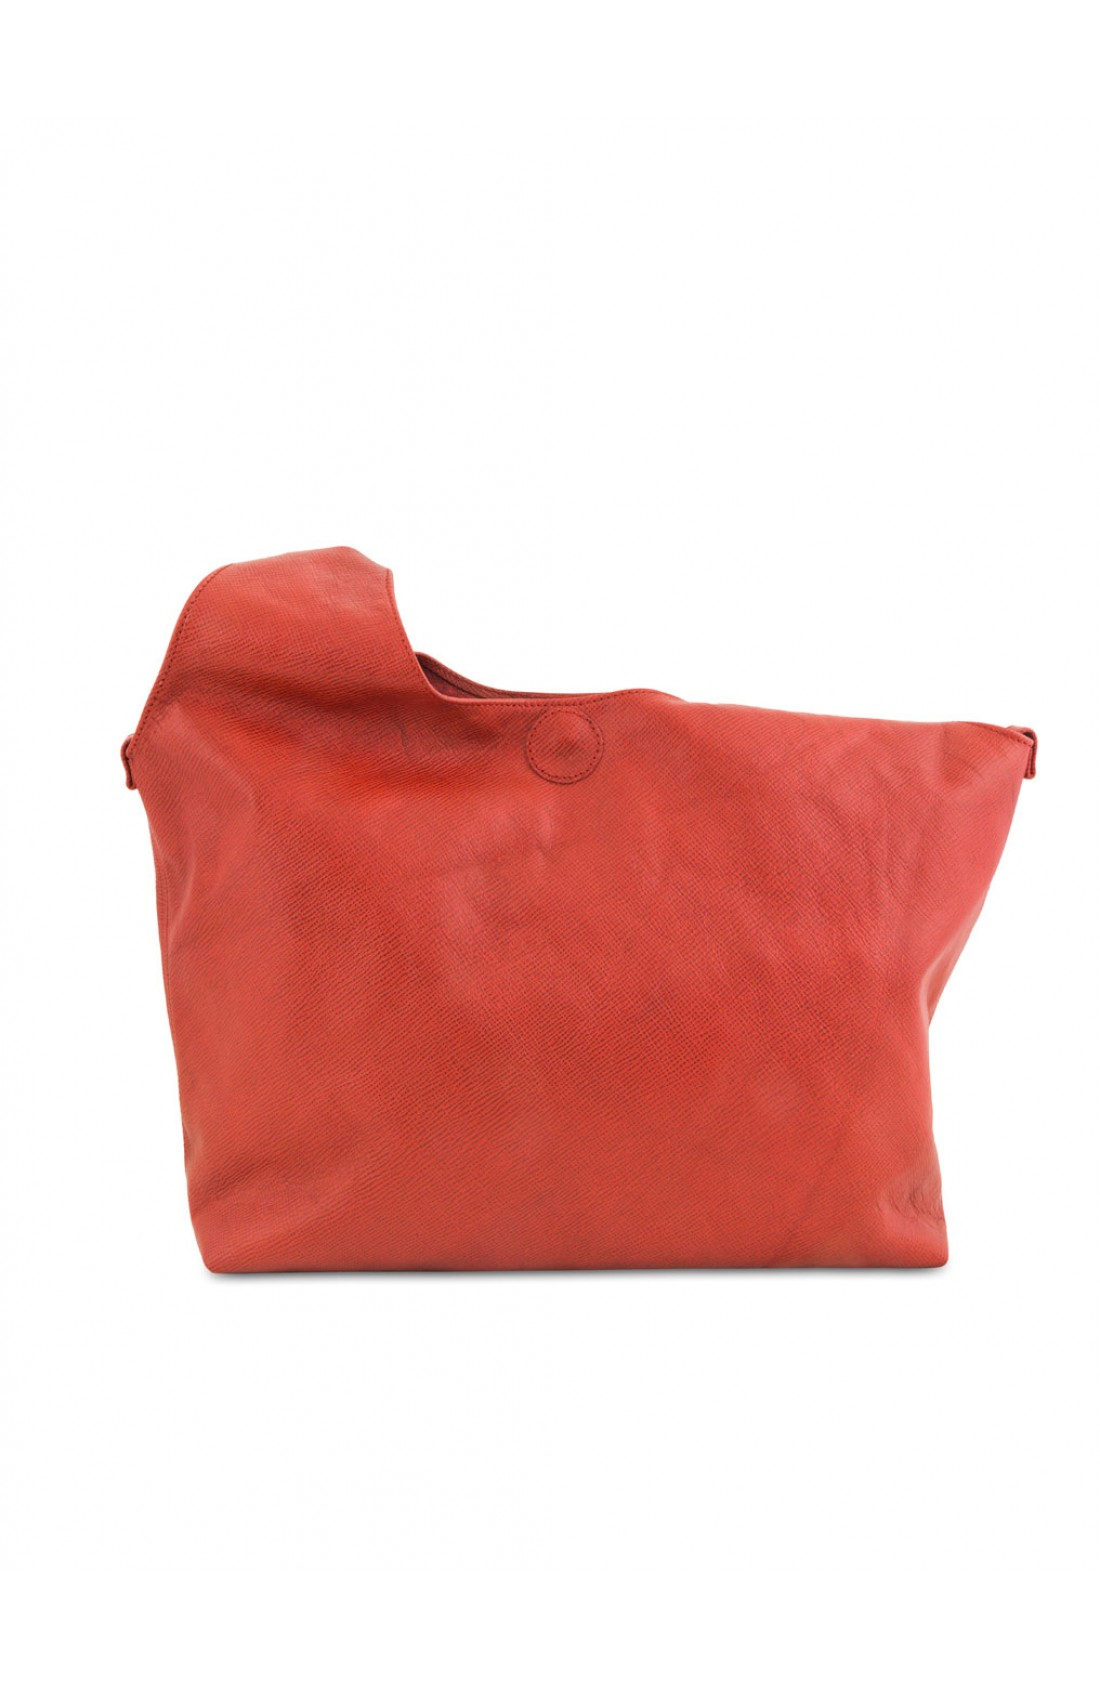 Borsa in pelle red edition